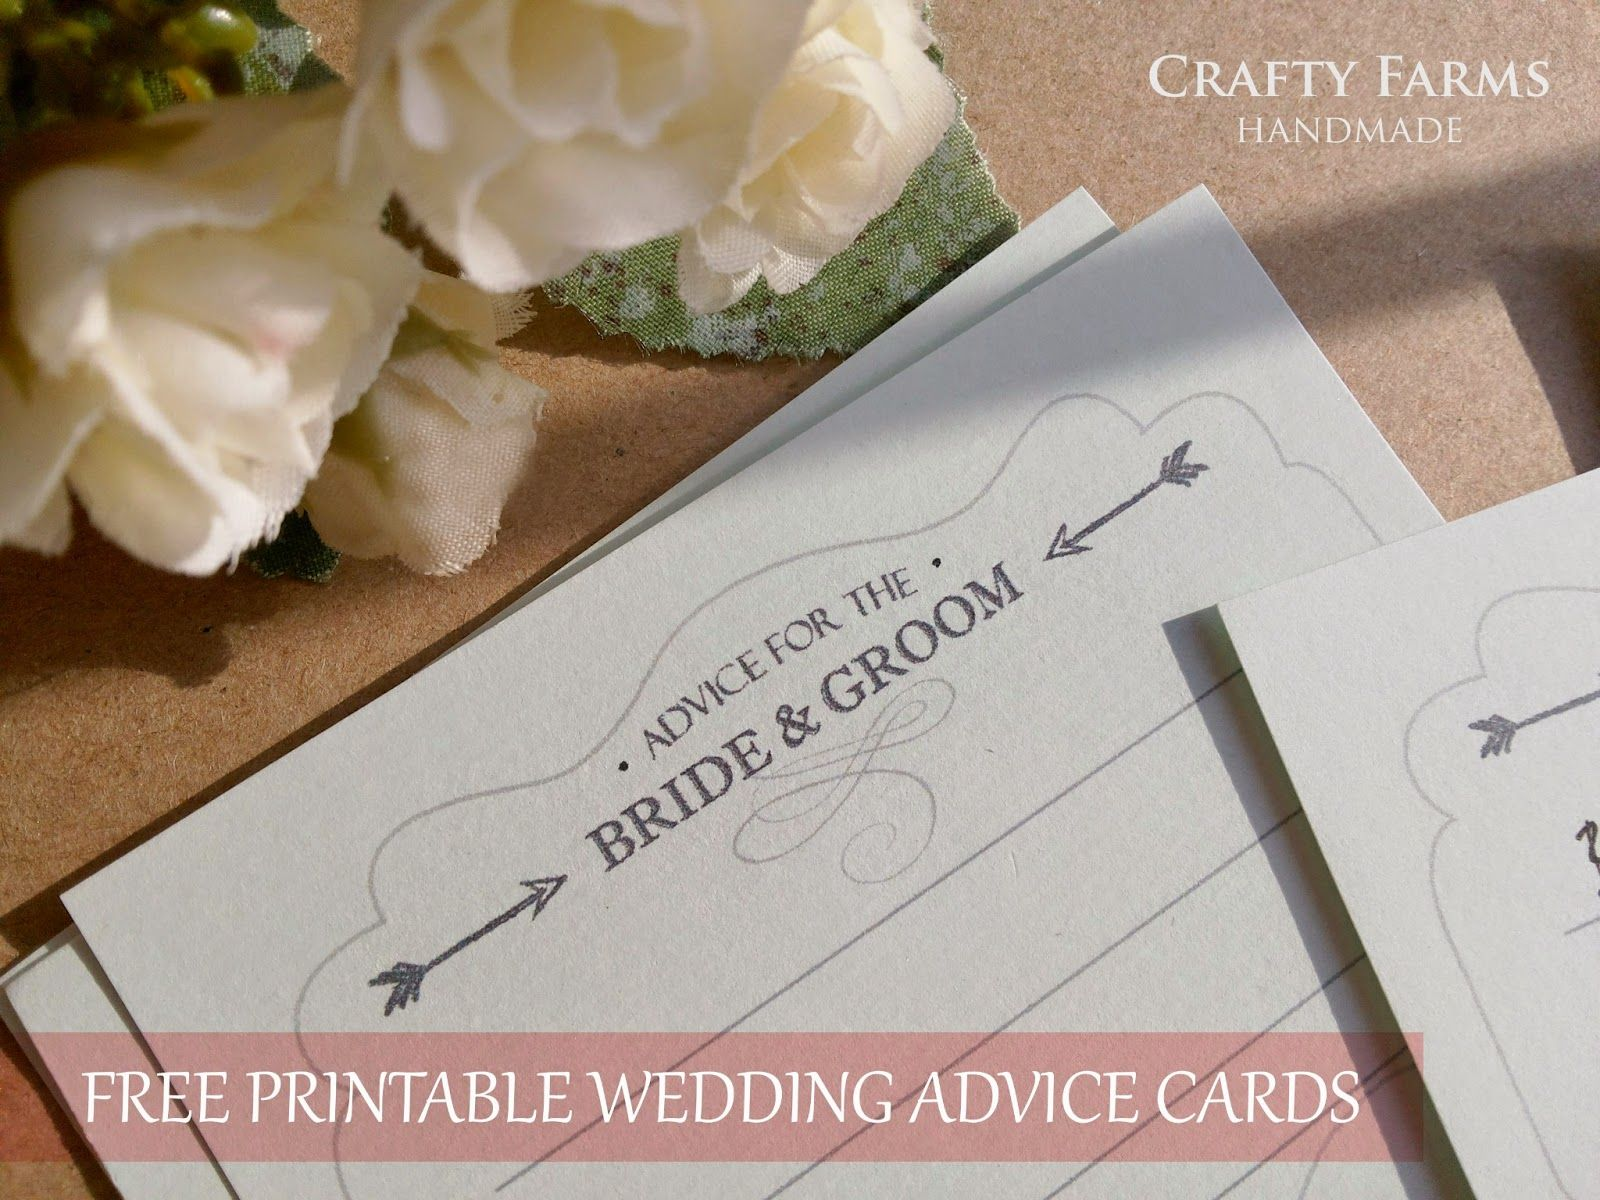 free download printable wedding advice cards | Michael and Maia ...